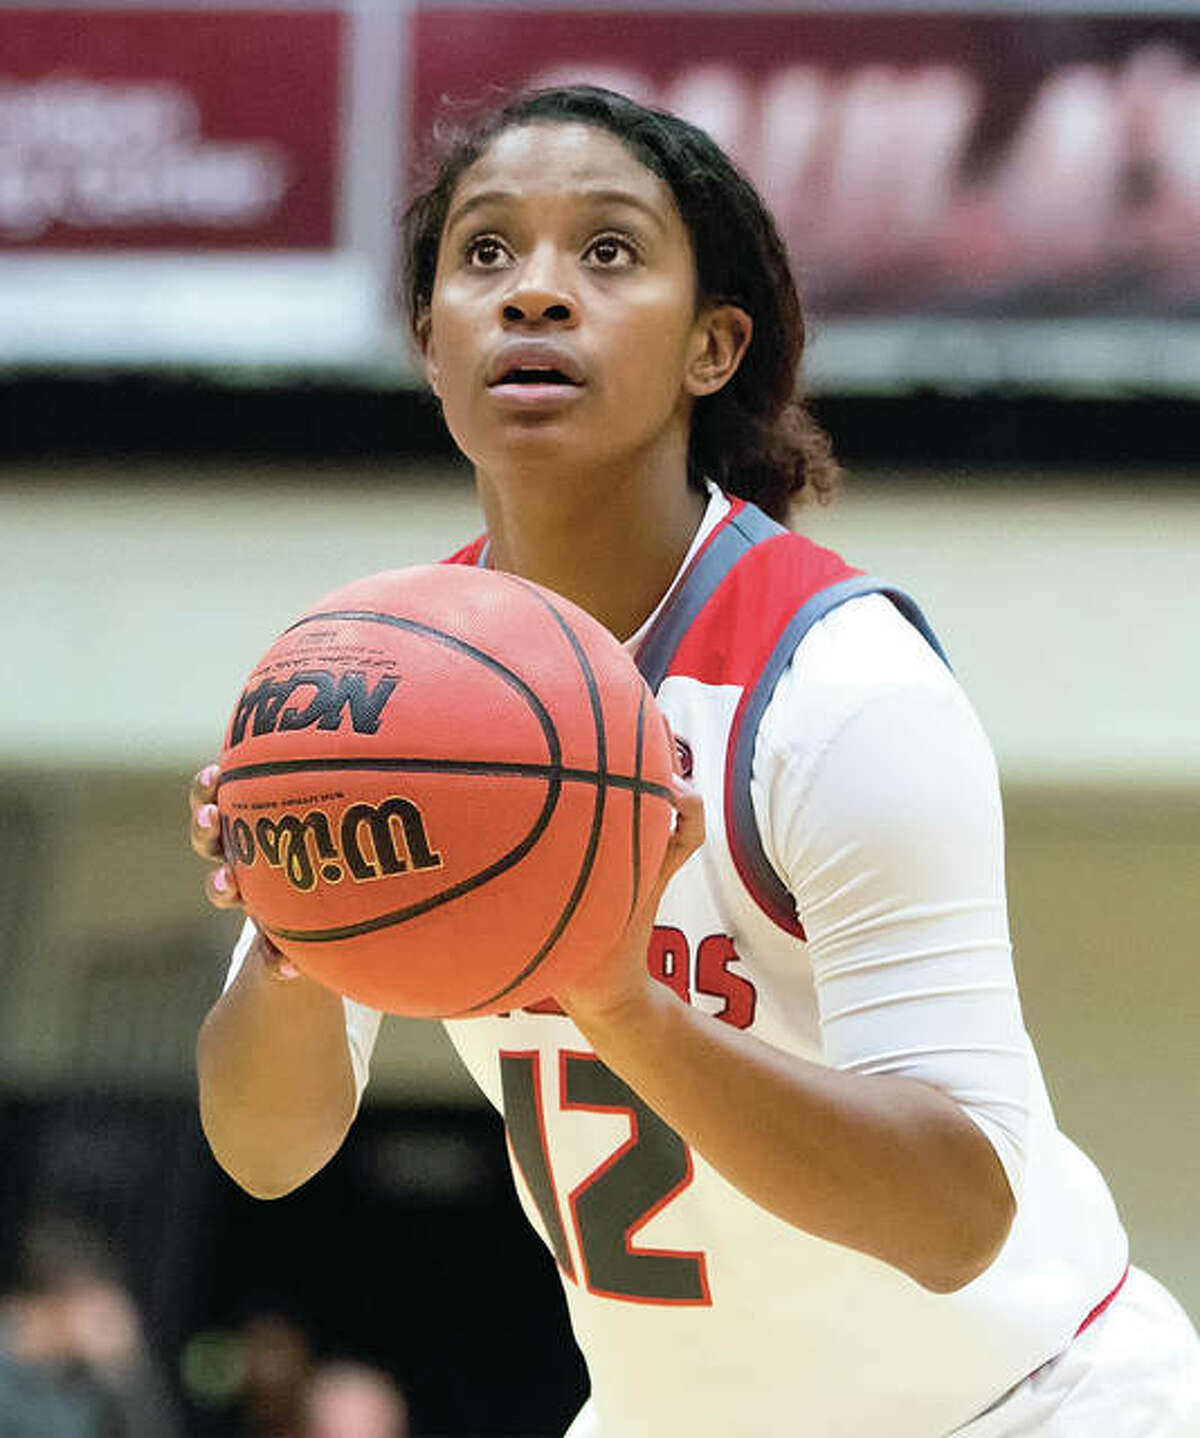 SIUE's Lauren White, a senior from Edwardsville, scored a career-high 28 points against Northern Illinois on Sunday at the Vadalabene Center in Edwardsville, but it was not enough to prevent a loss that dropped the Cougars to 3-6.